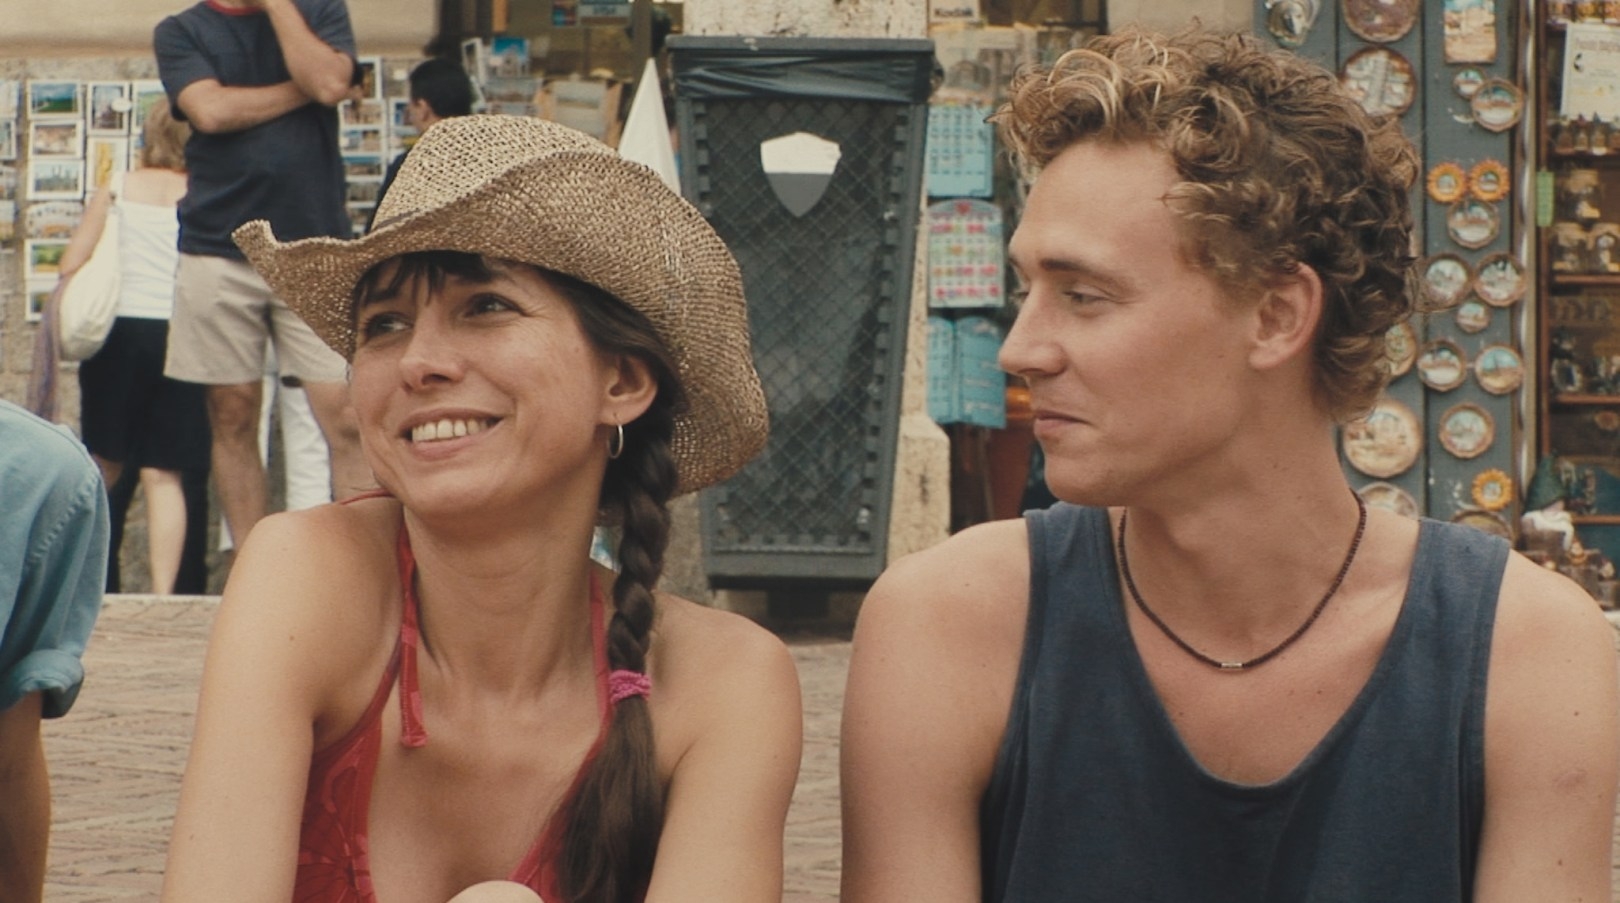 Films in London today: UNRELATED at Lexi Cinema (02 SEP).